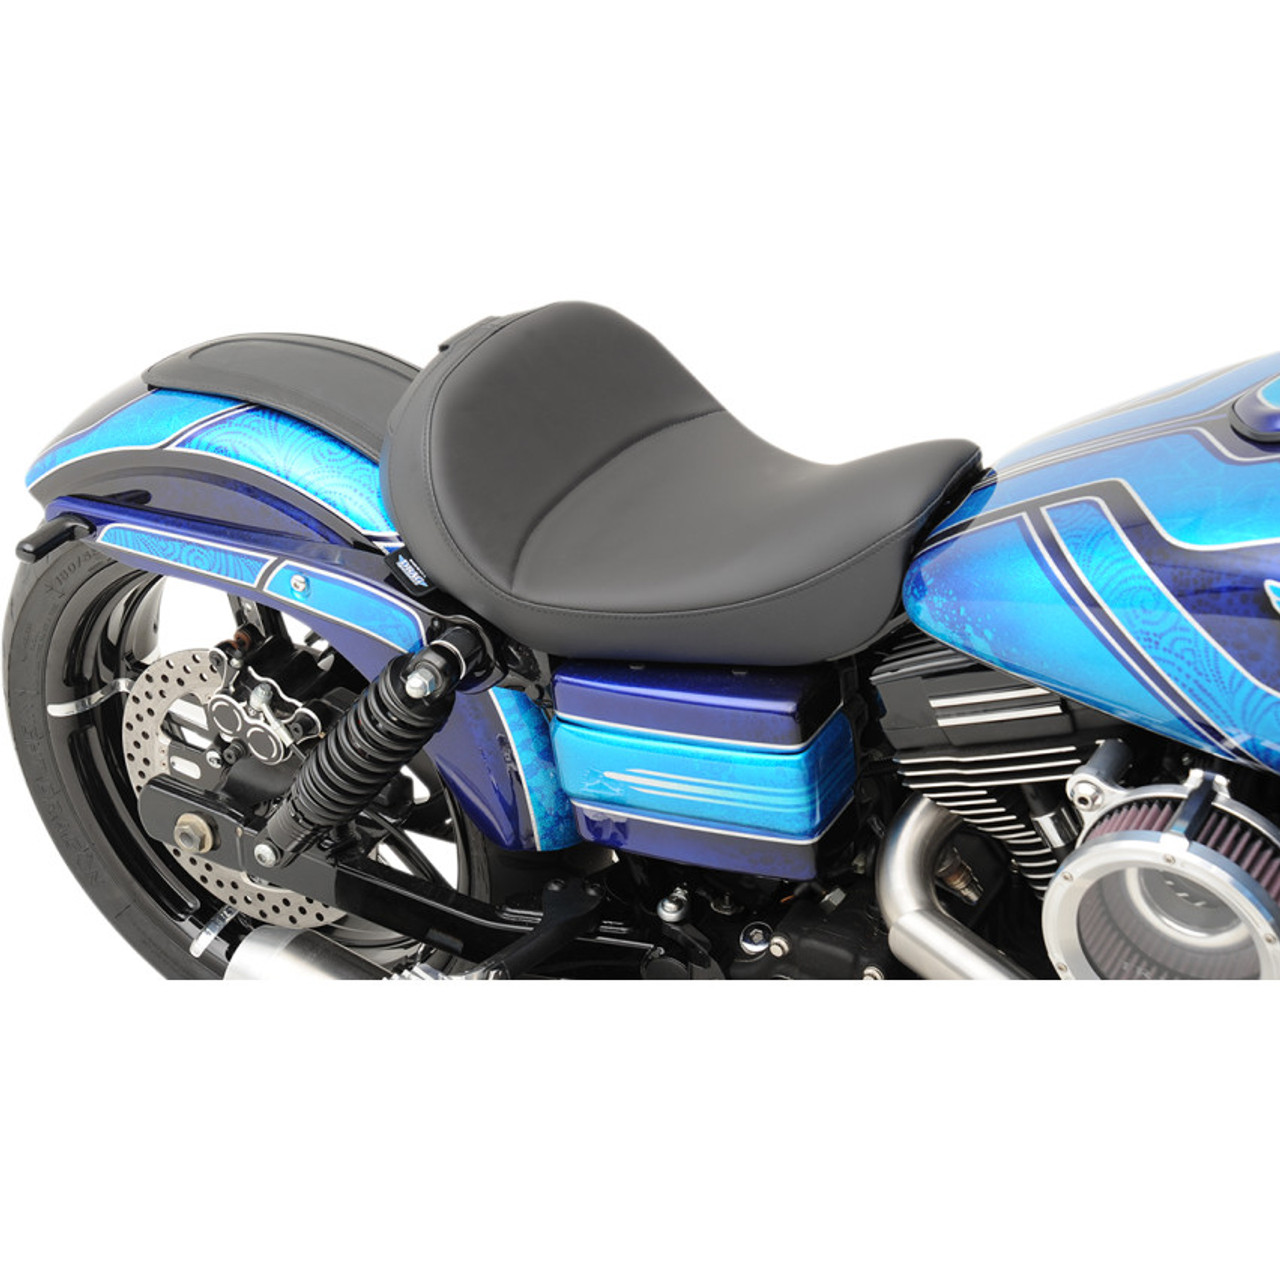 Drag Specialties Solo Seat With Backrest Option For 2006